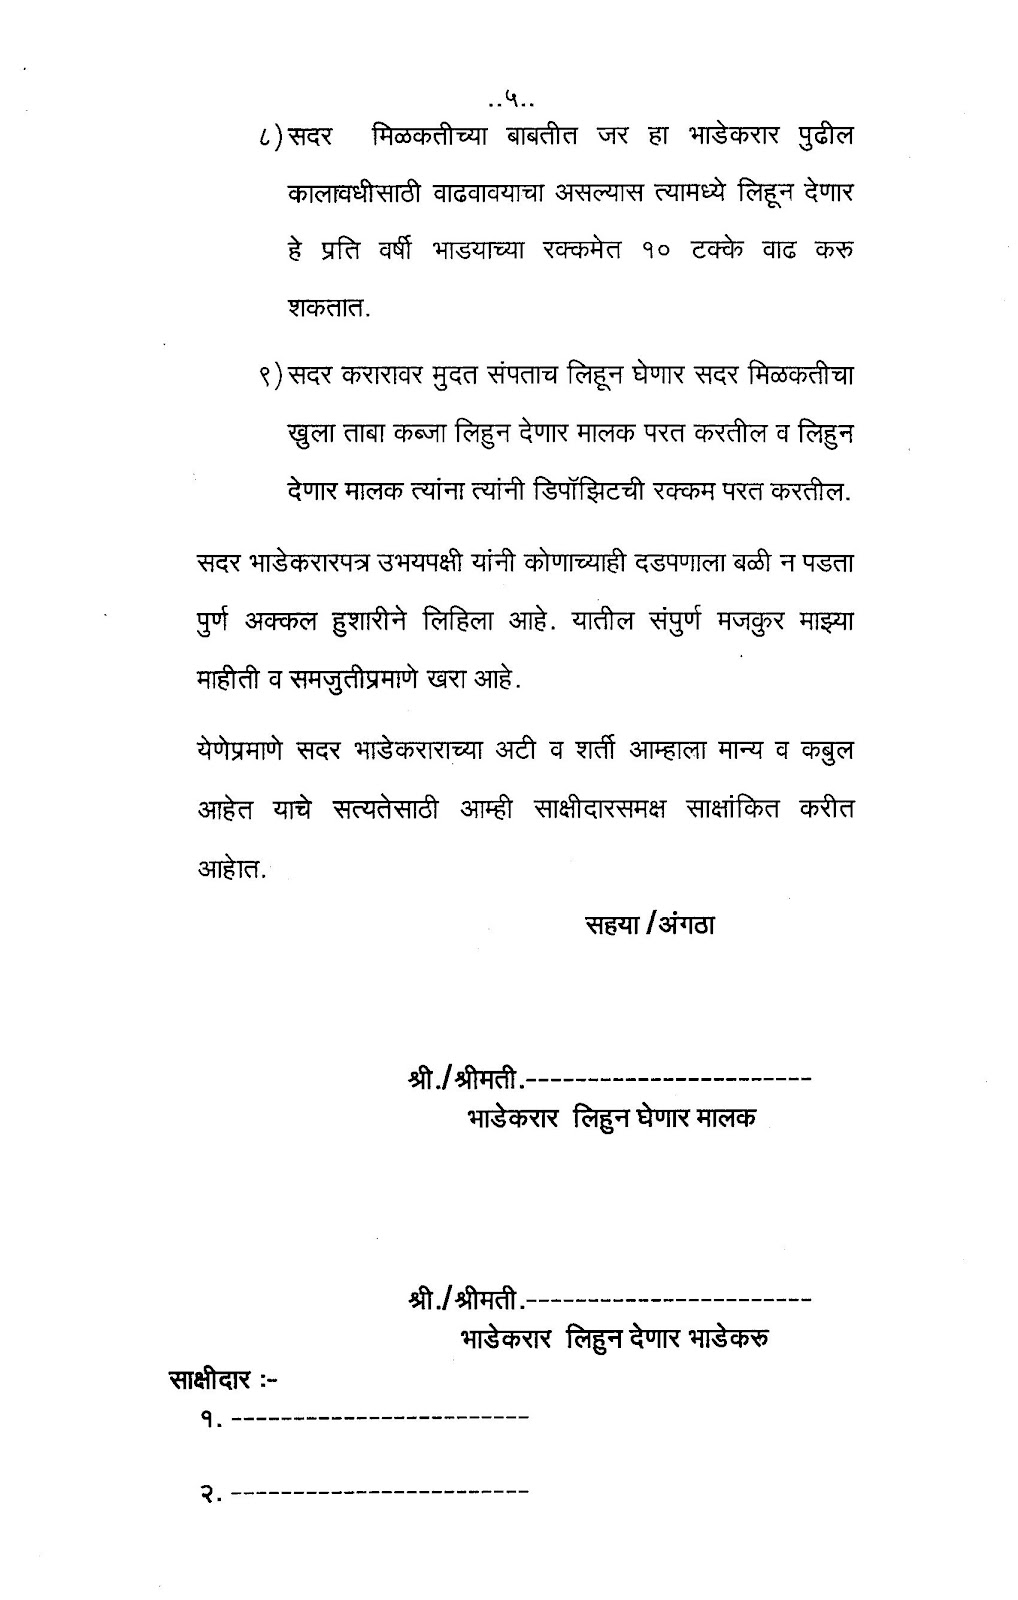 Letter writing services in marathi format